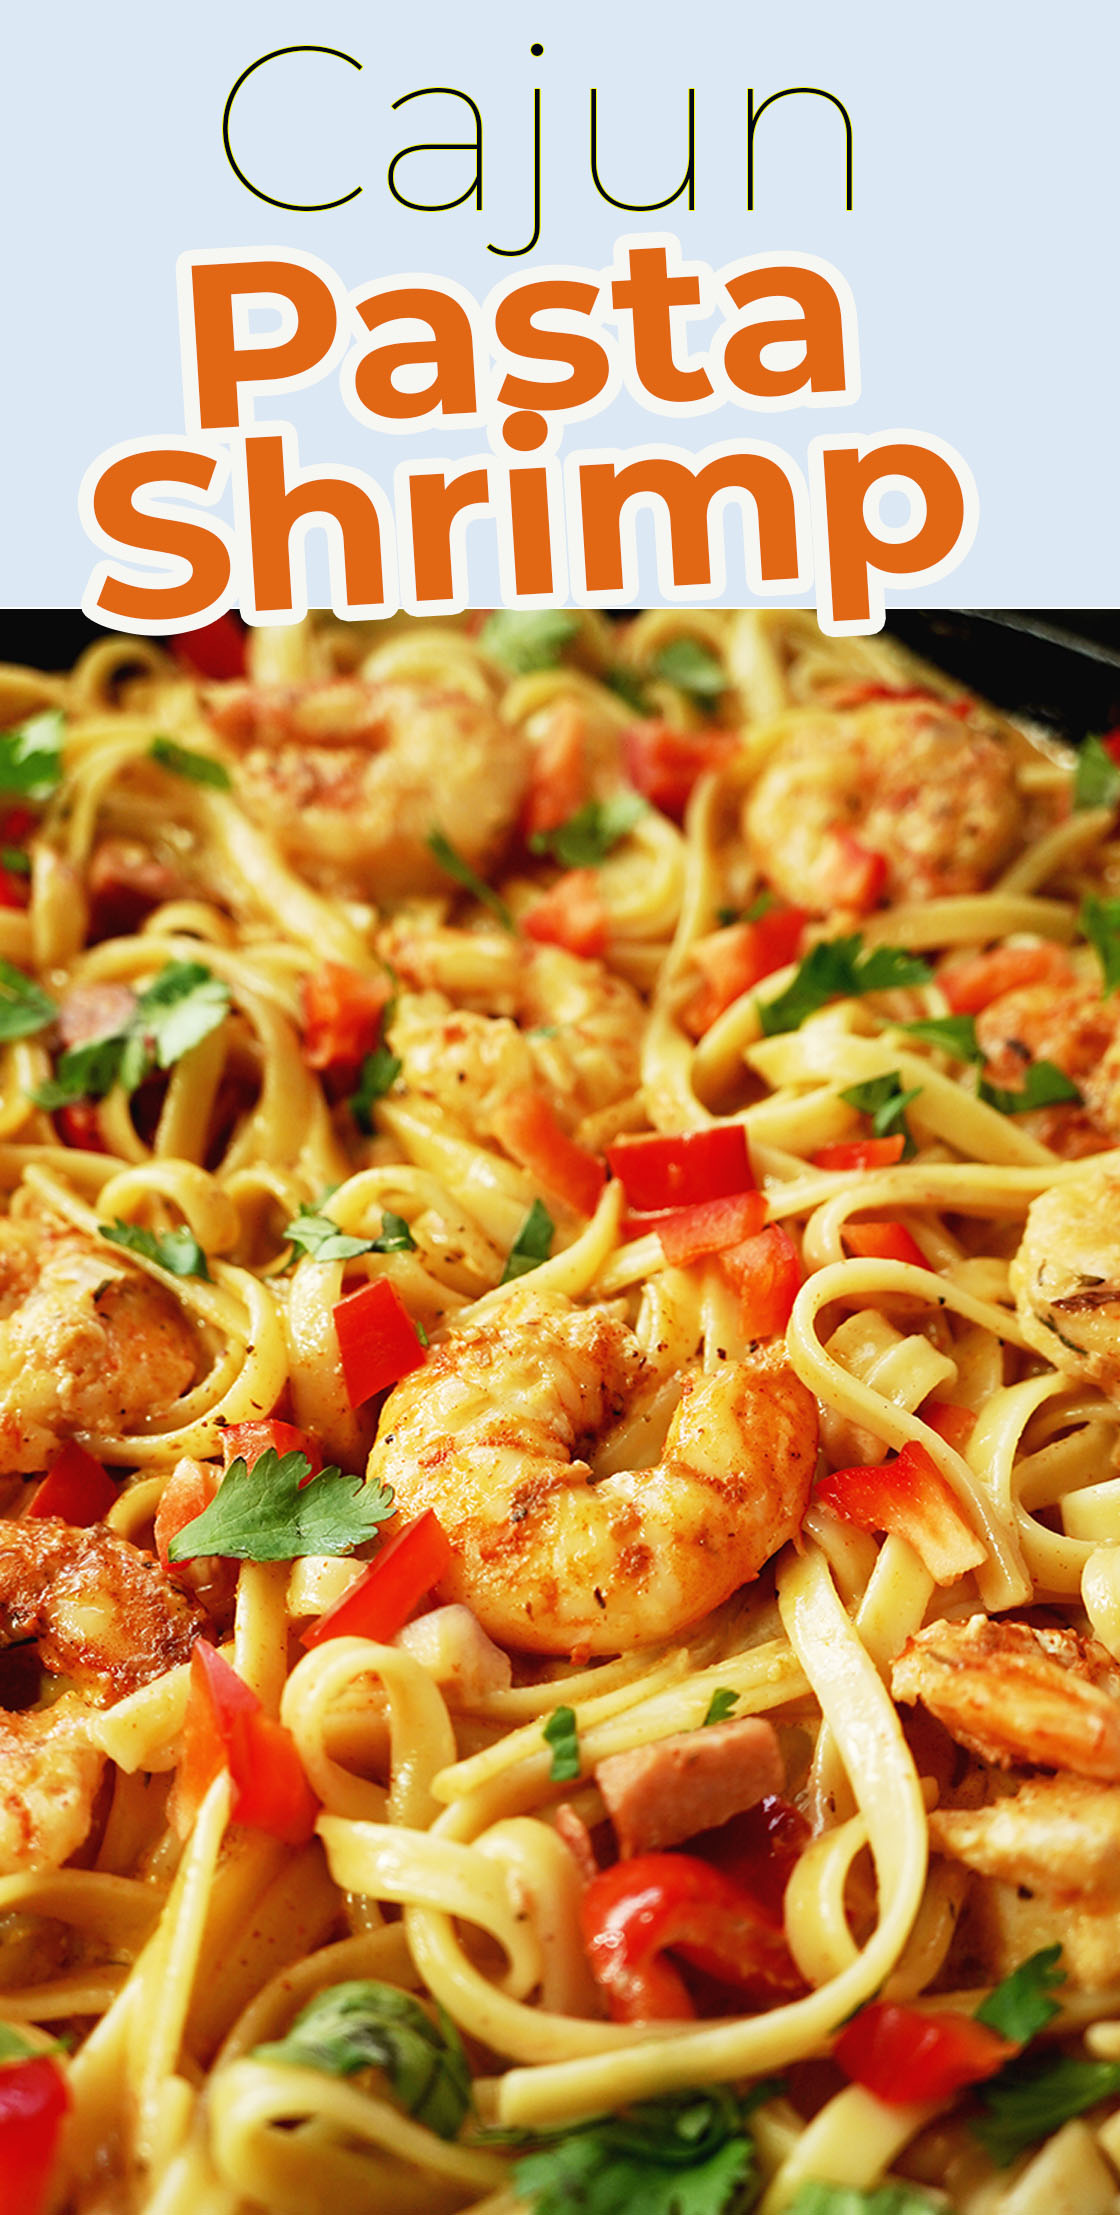 CAJUN PASTA SHRIMP and sausage. Tastes as good as any high quality restaurant, but more cost effective. This dish is very easy to make.